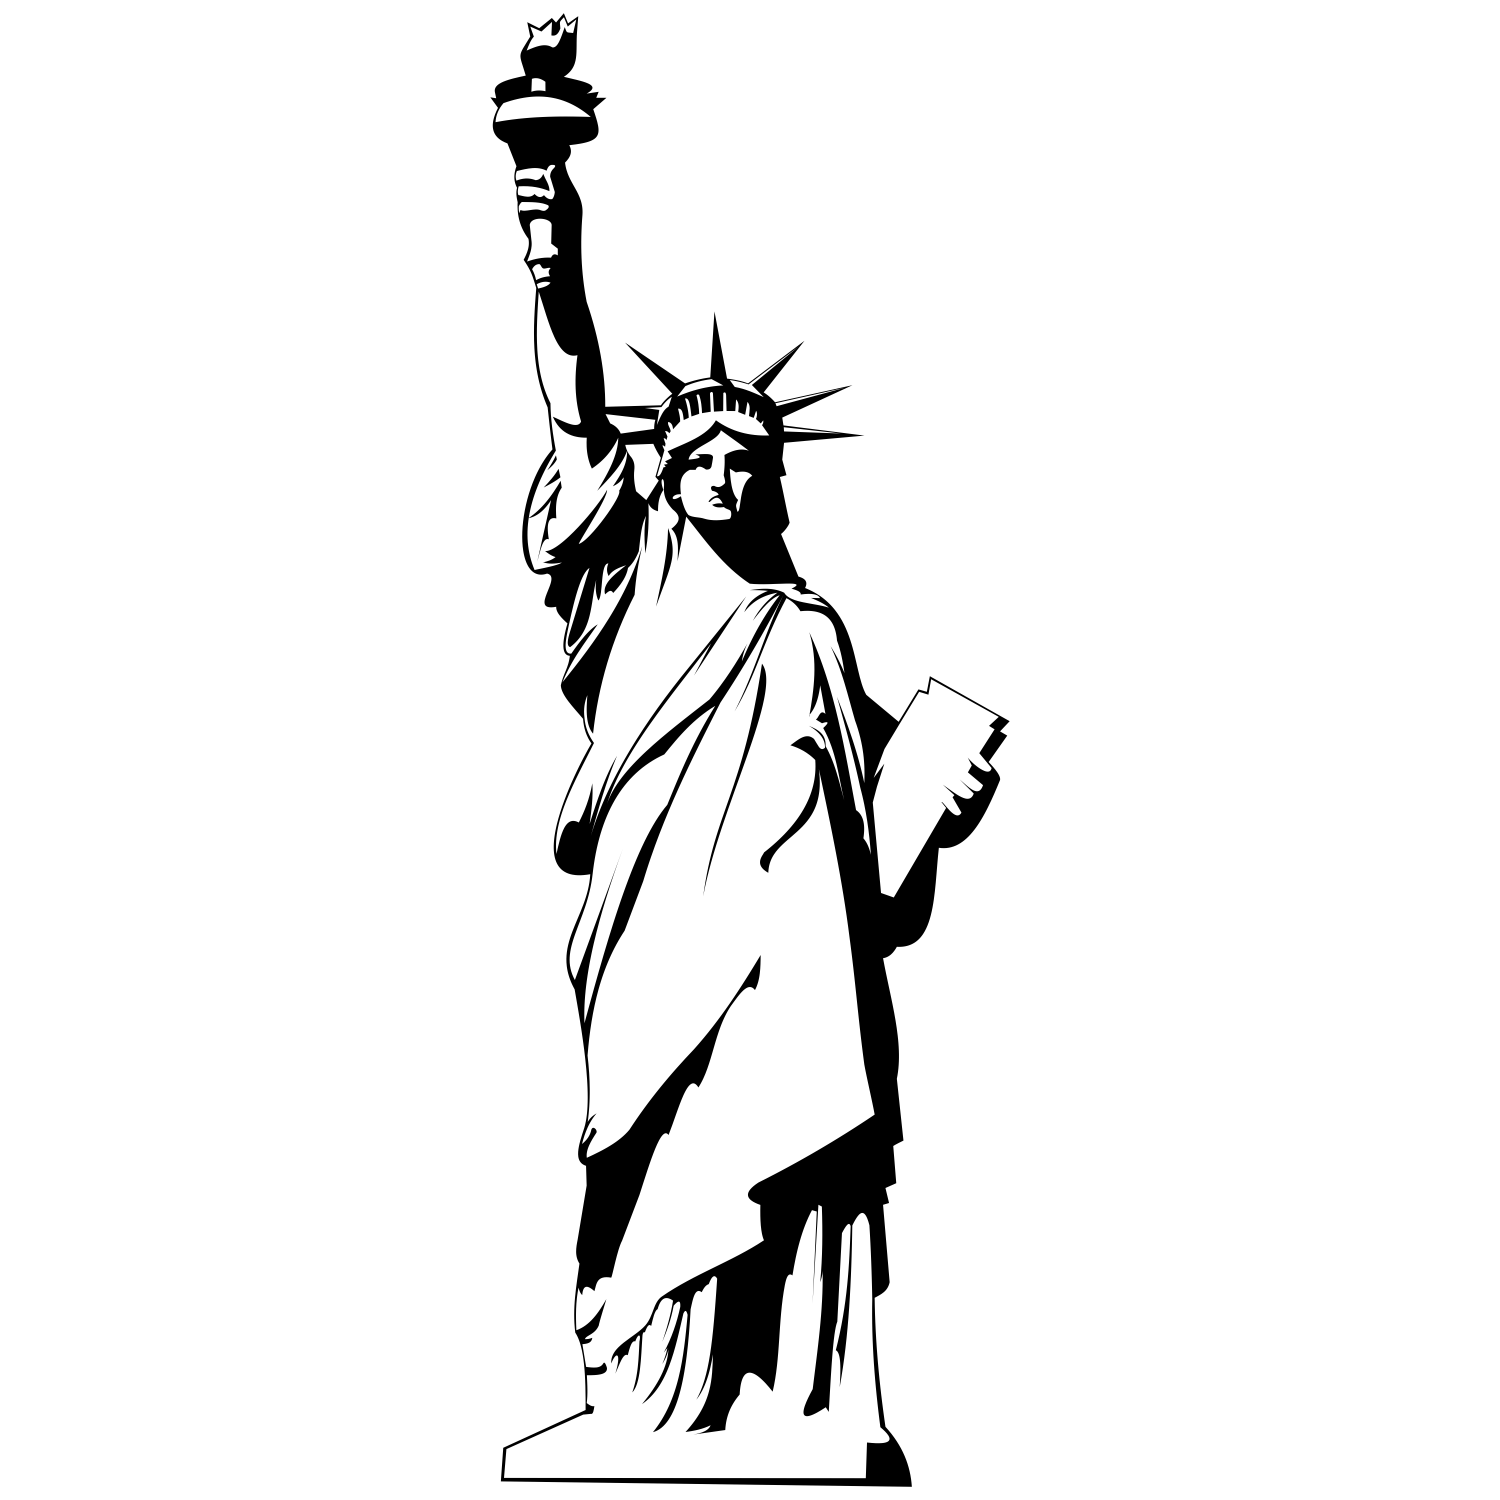 statue of liberty outline statue of liberty drawing outline clipart clipartingcom statue liberty outline of